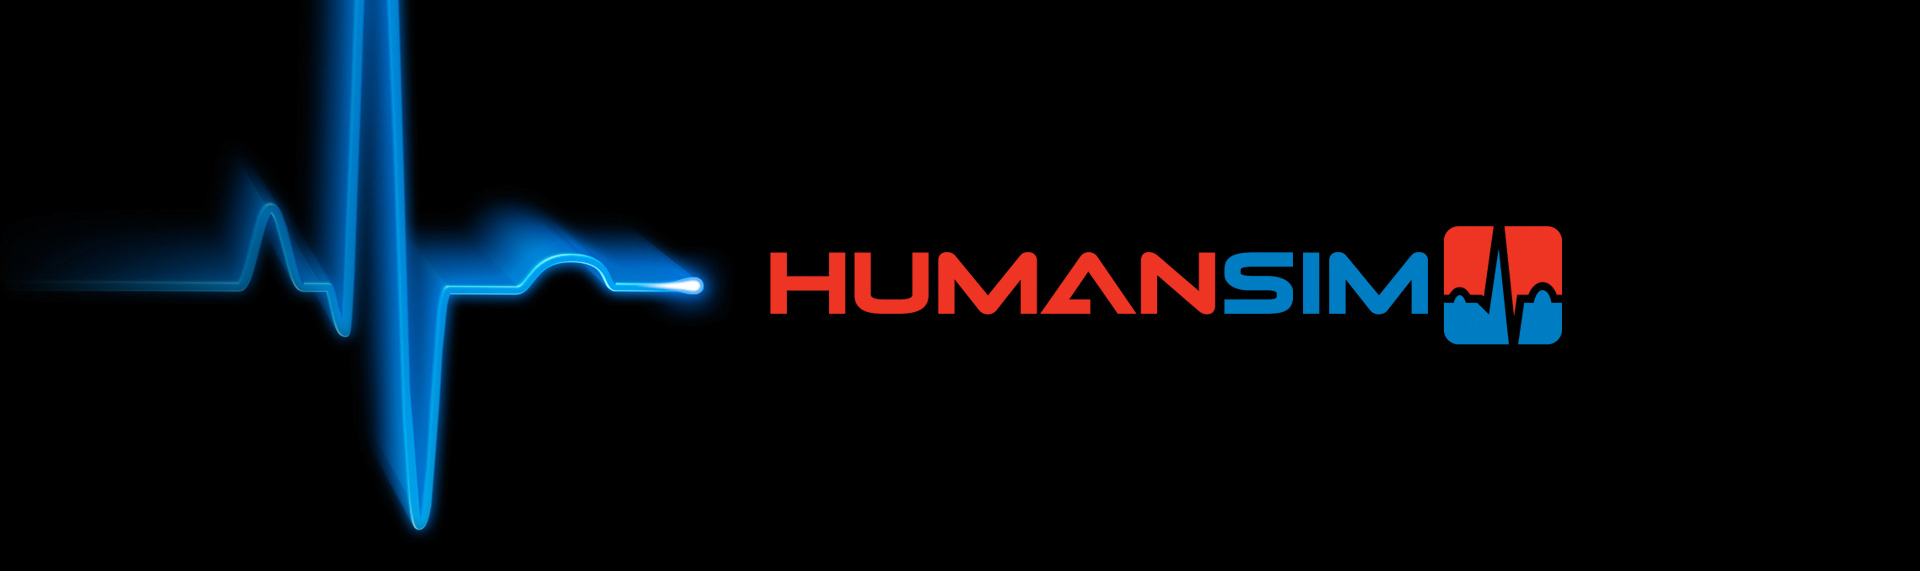 HumanSim  Brand Identity Design  After the first successful brand identity creation endeavor for Virtual Heroes, the company came back to us a second time to design the logo for their HumanSim product. HumanSim by Virtual Heroes, enables health care professionals to sharpen their assessment and decision-making skills without risk to patients in realistic, challenging, immersive environments. HumanSim is part of their Advanced Learning Technologies leveraging simulation and digital games-based learning paradigms to accelerate learning.